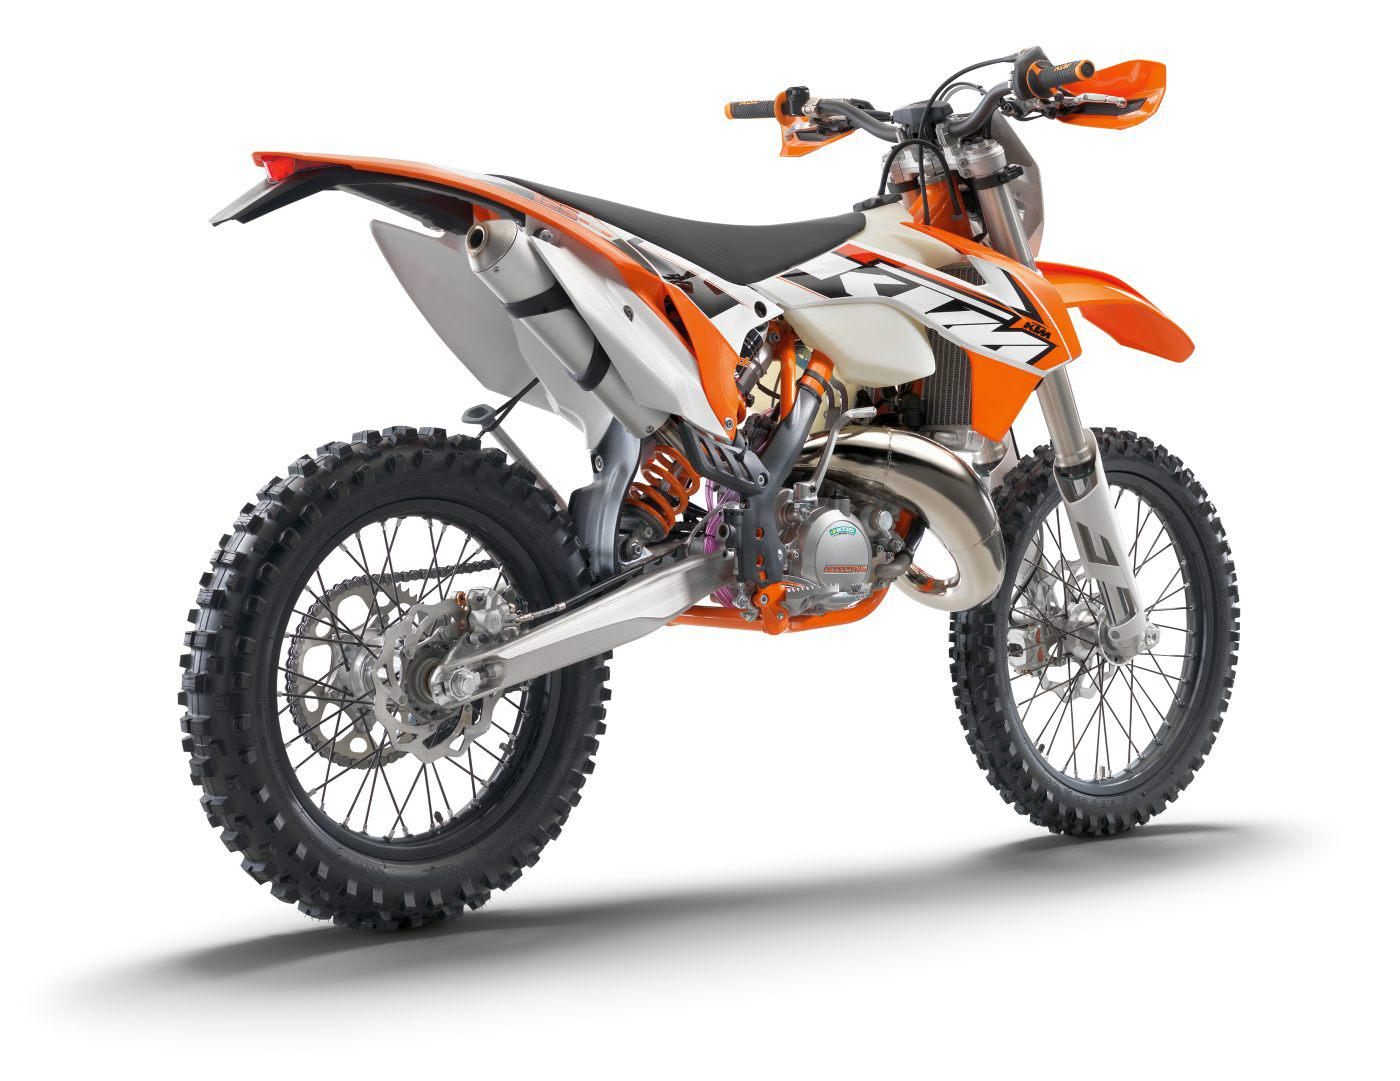 ktm exc enduro 2015 studio motorrad fotos motorrad bilder. Black Bedroom Furniture Sets. Home Design Ideas